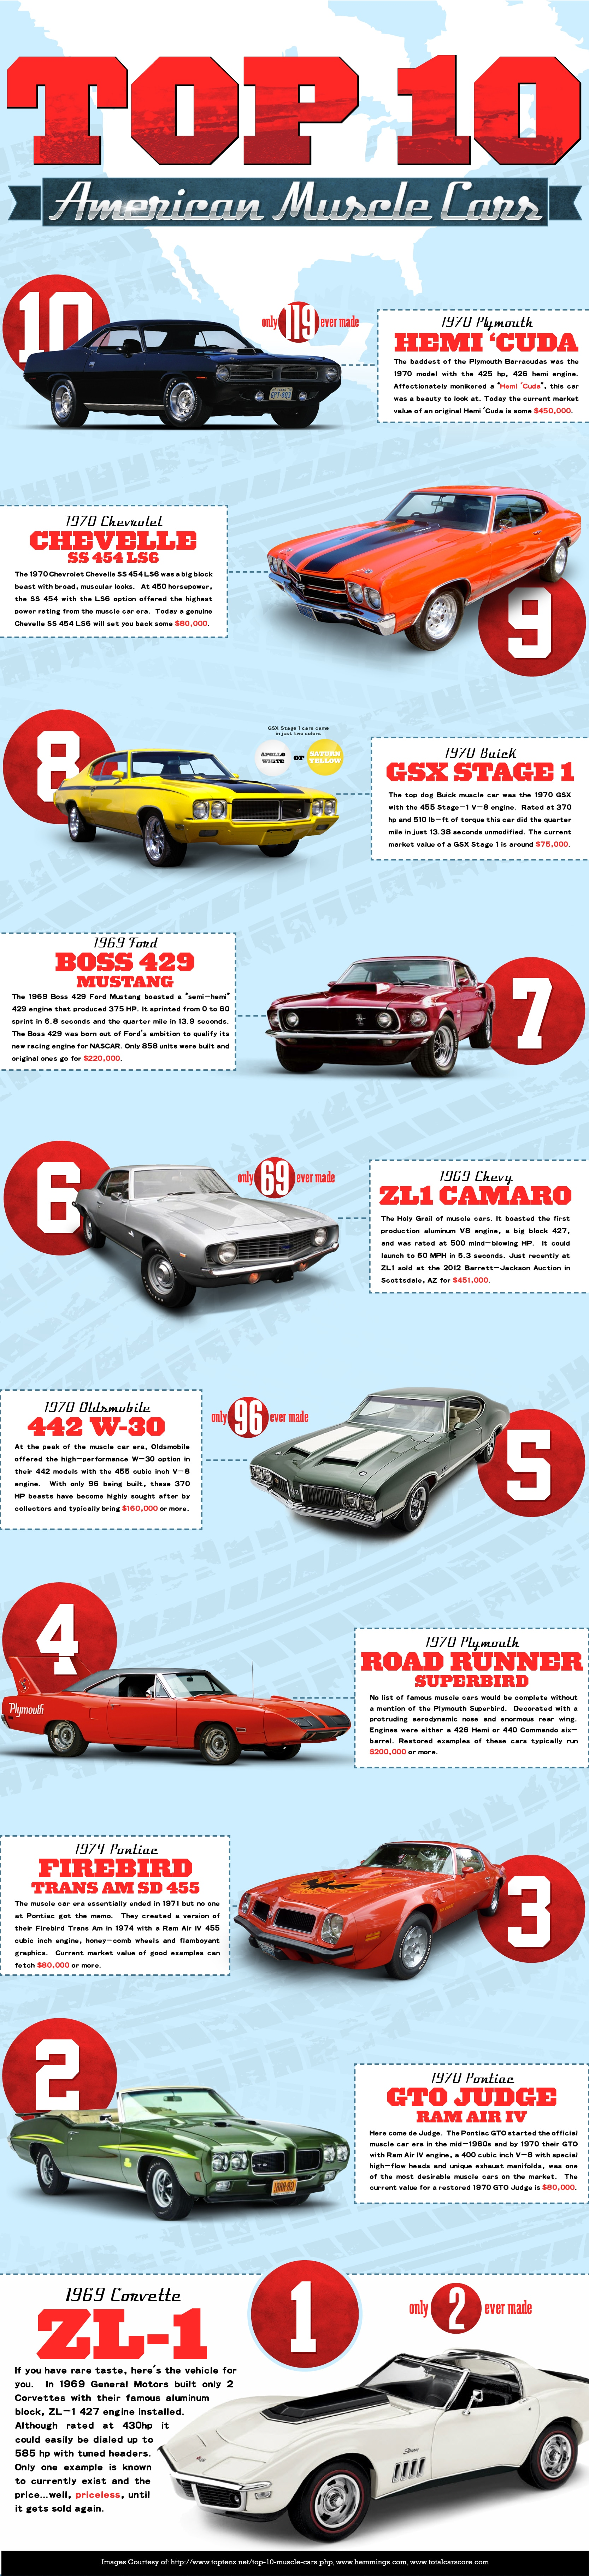 10 American Muscle Cars